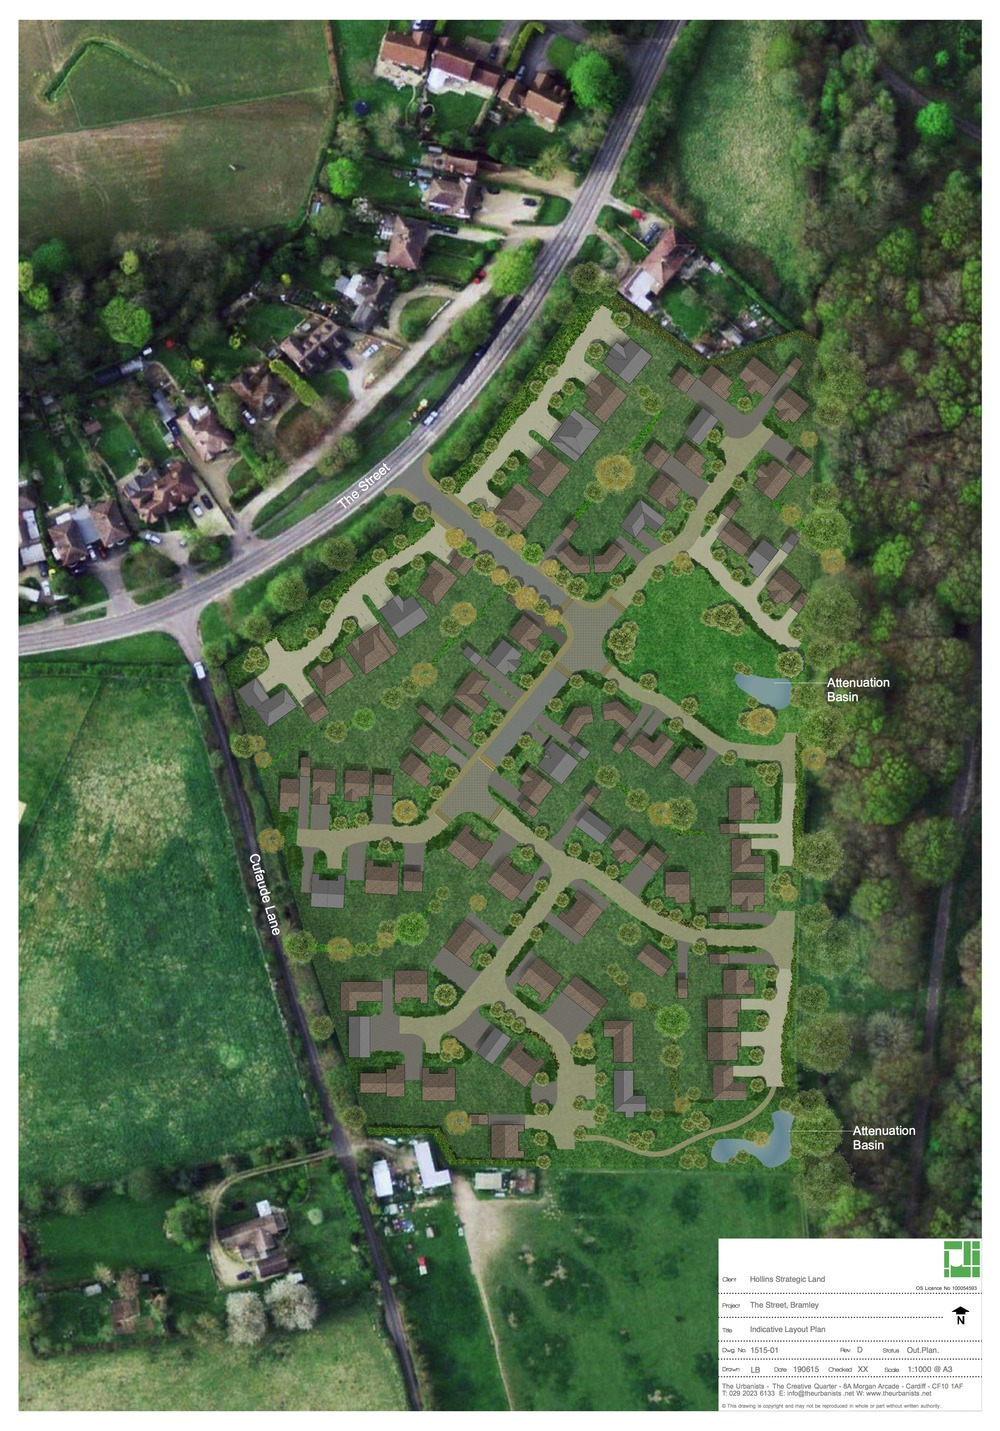 Proposed development of up to 82 dwellings on an edge of settlement site